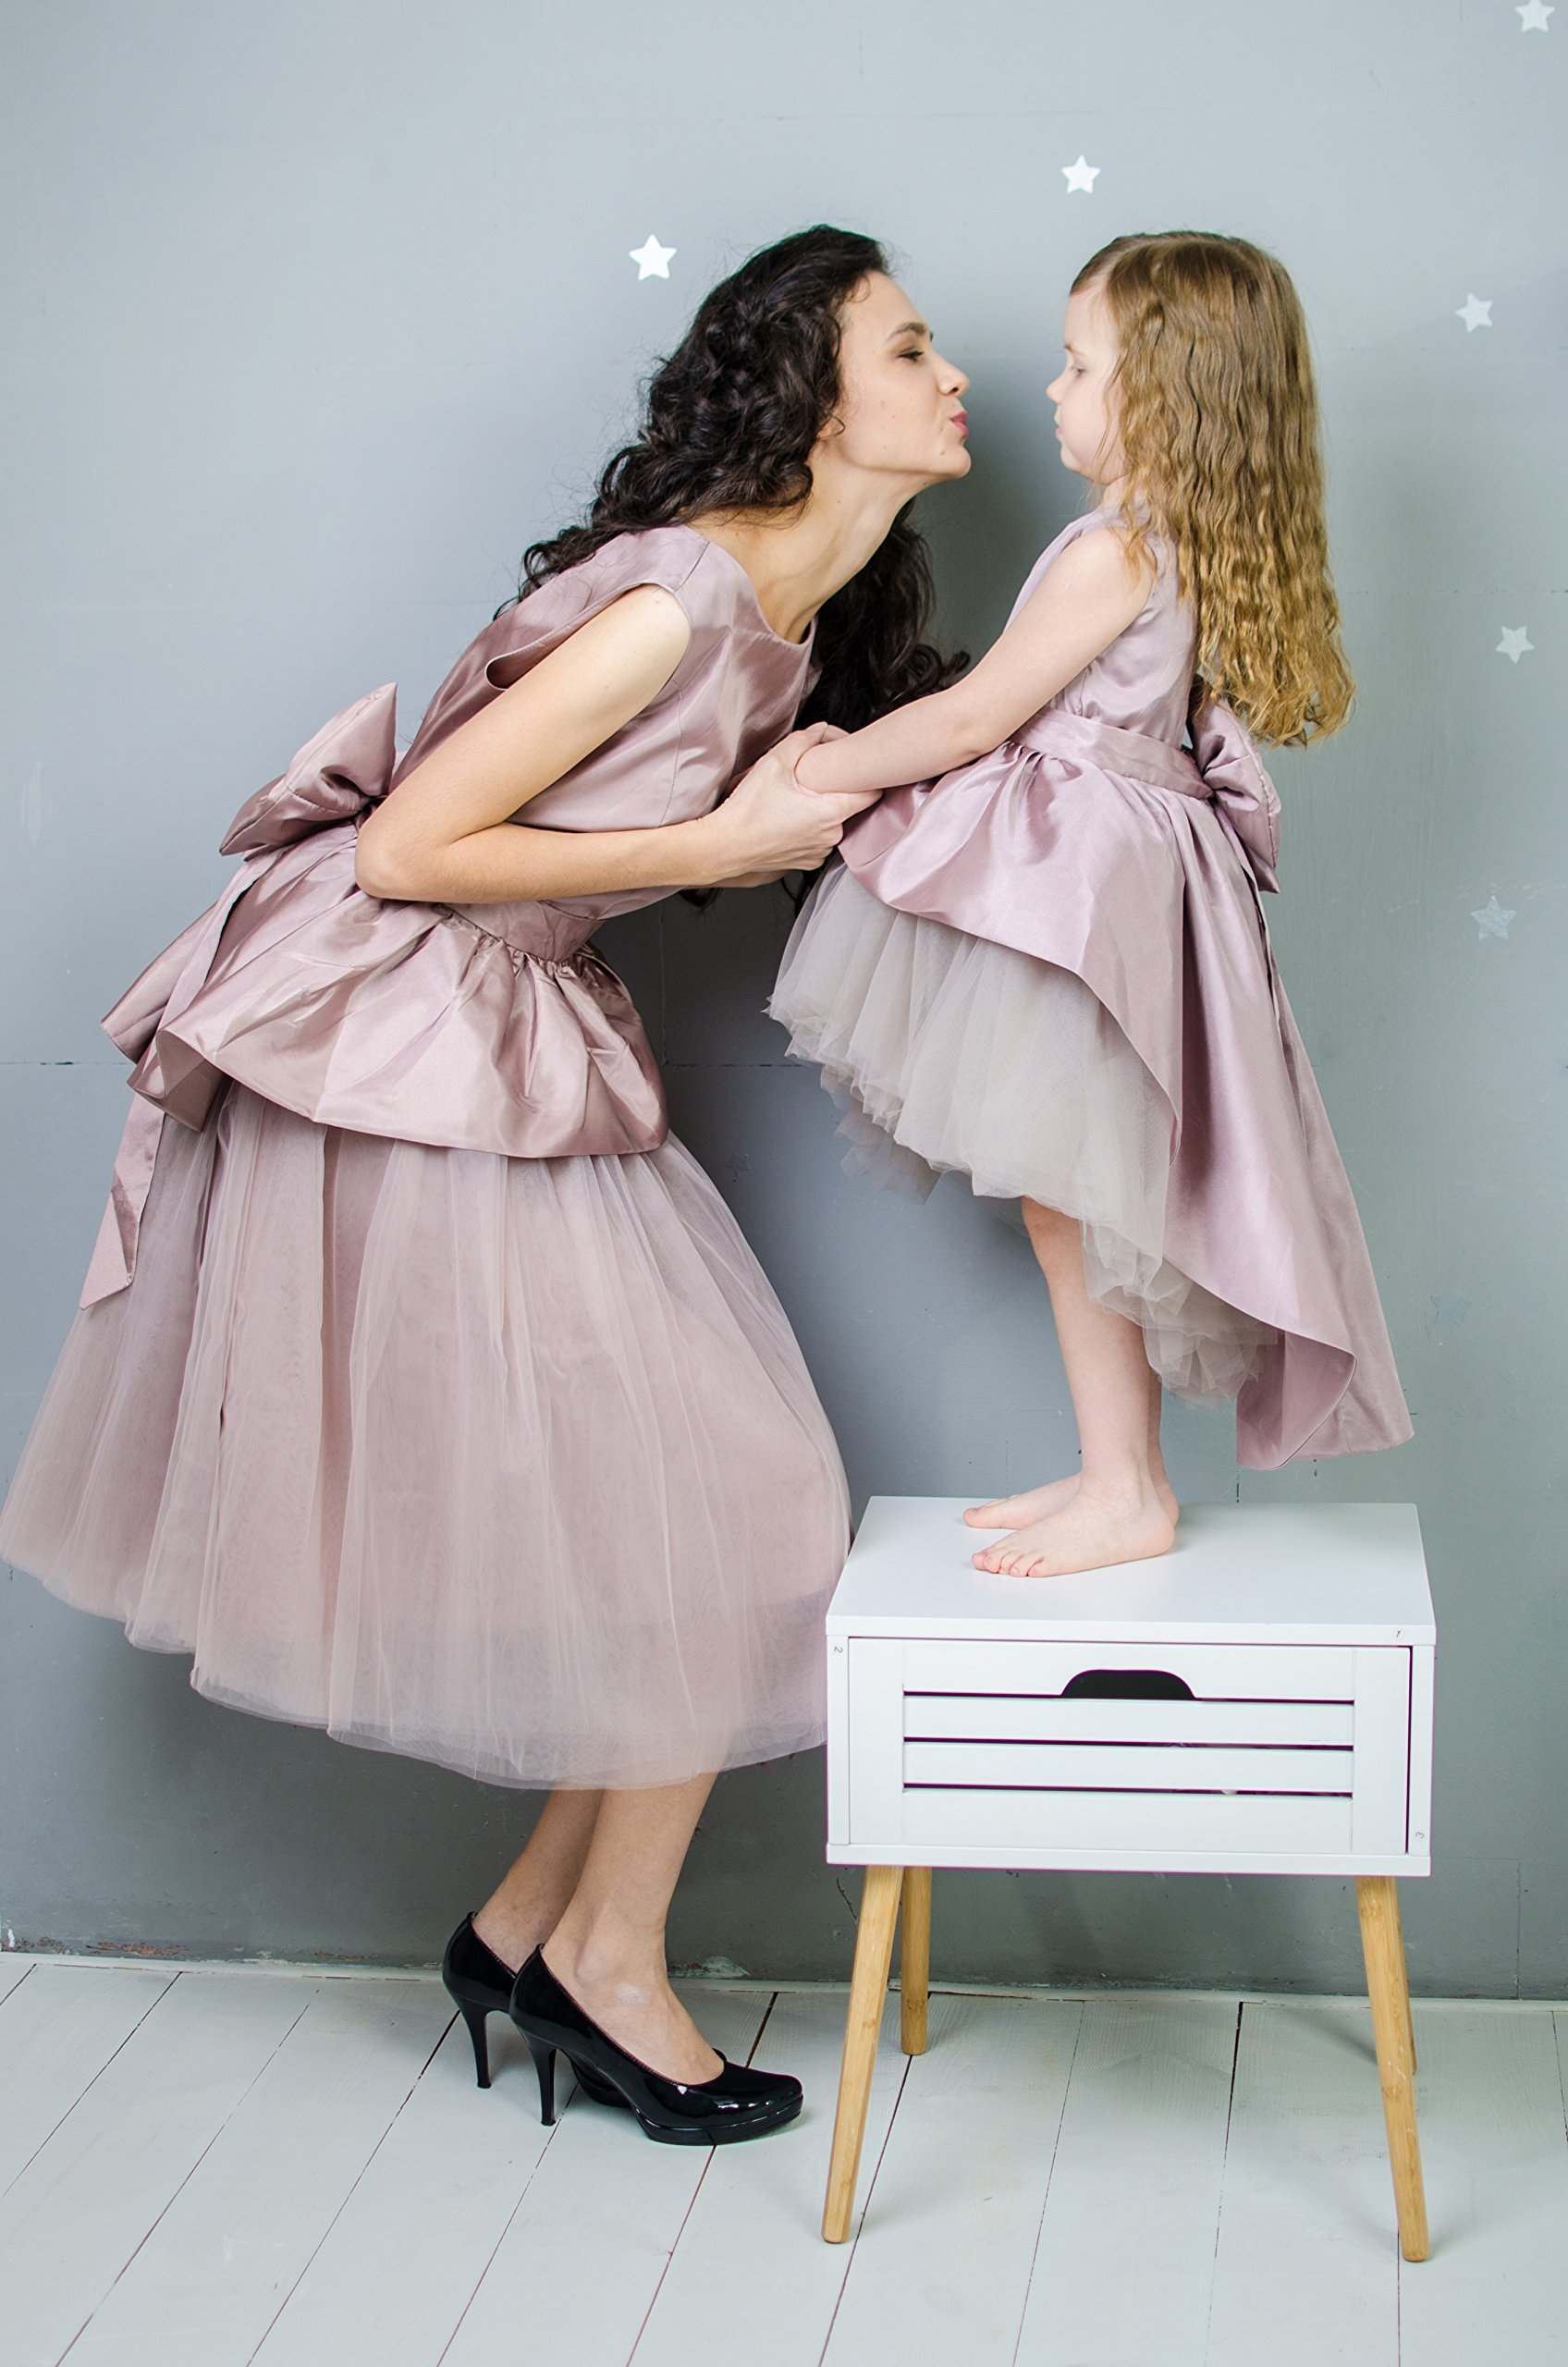 Matching Party Dresses Mother Daughter Matching Dress Outfits Mommy and Me Formal Dresses Taffeta and Tulle Baby Birthday Dresses